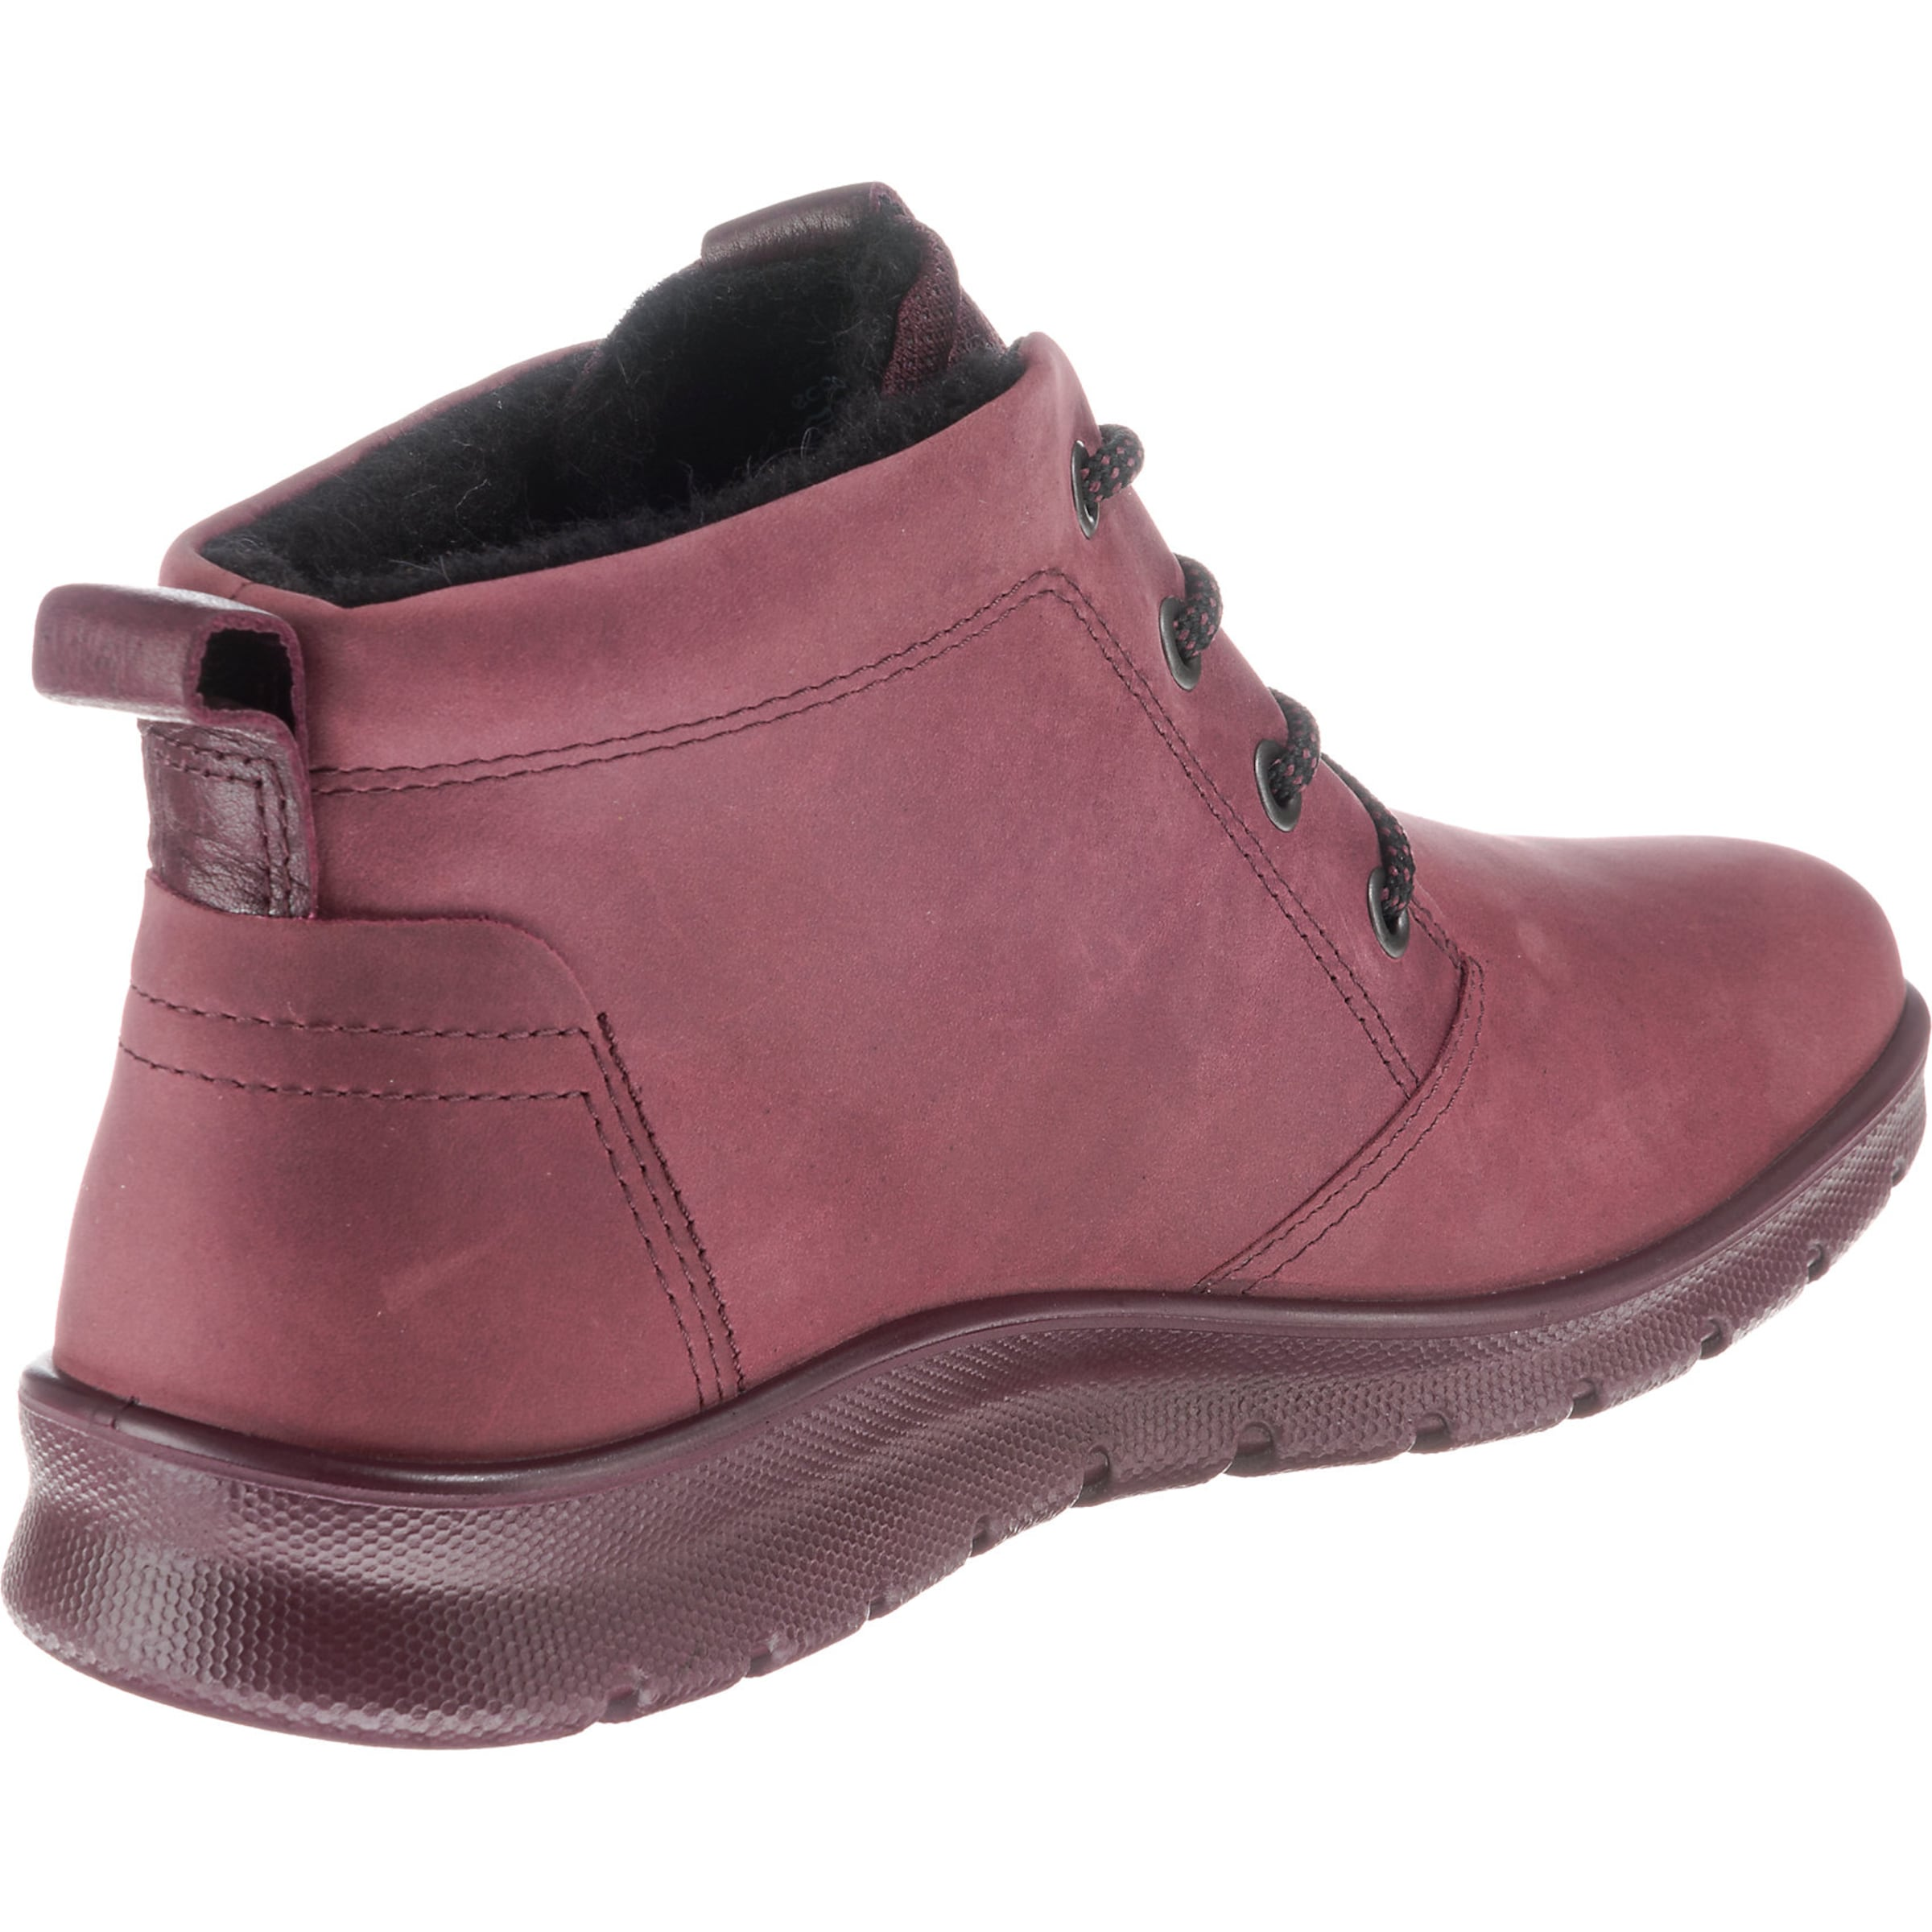 Stiefel Stiefel Ecco In Pastellrot In In Ecco Pastellrot Ecco Stiefel Ecco Pastellrot Stiefel E2HIYWD9